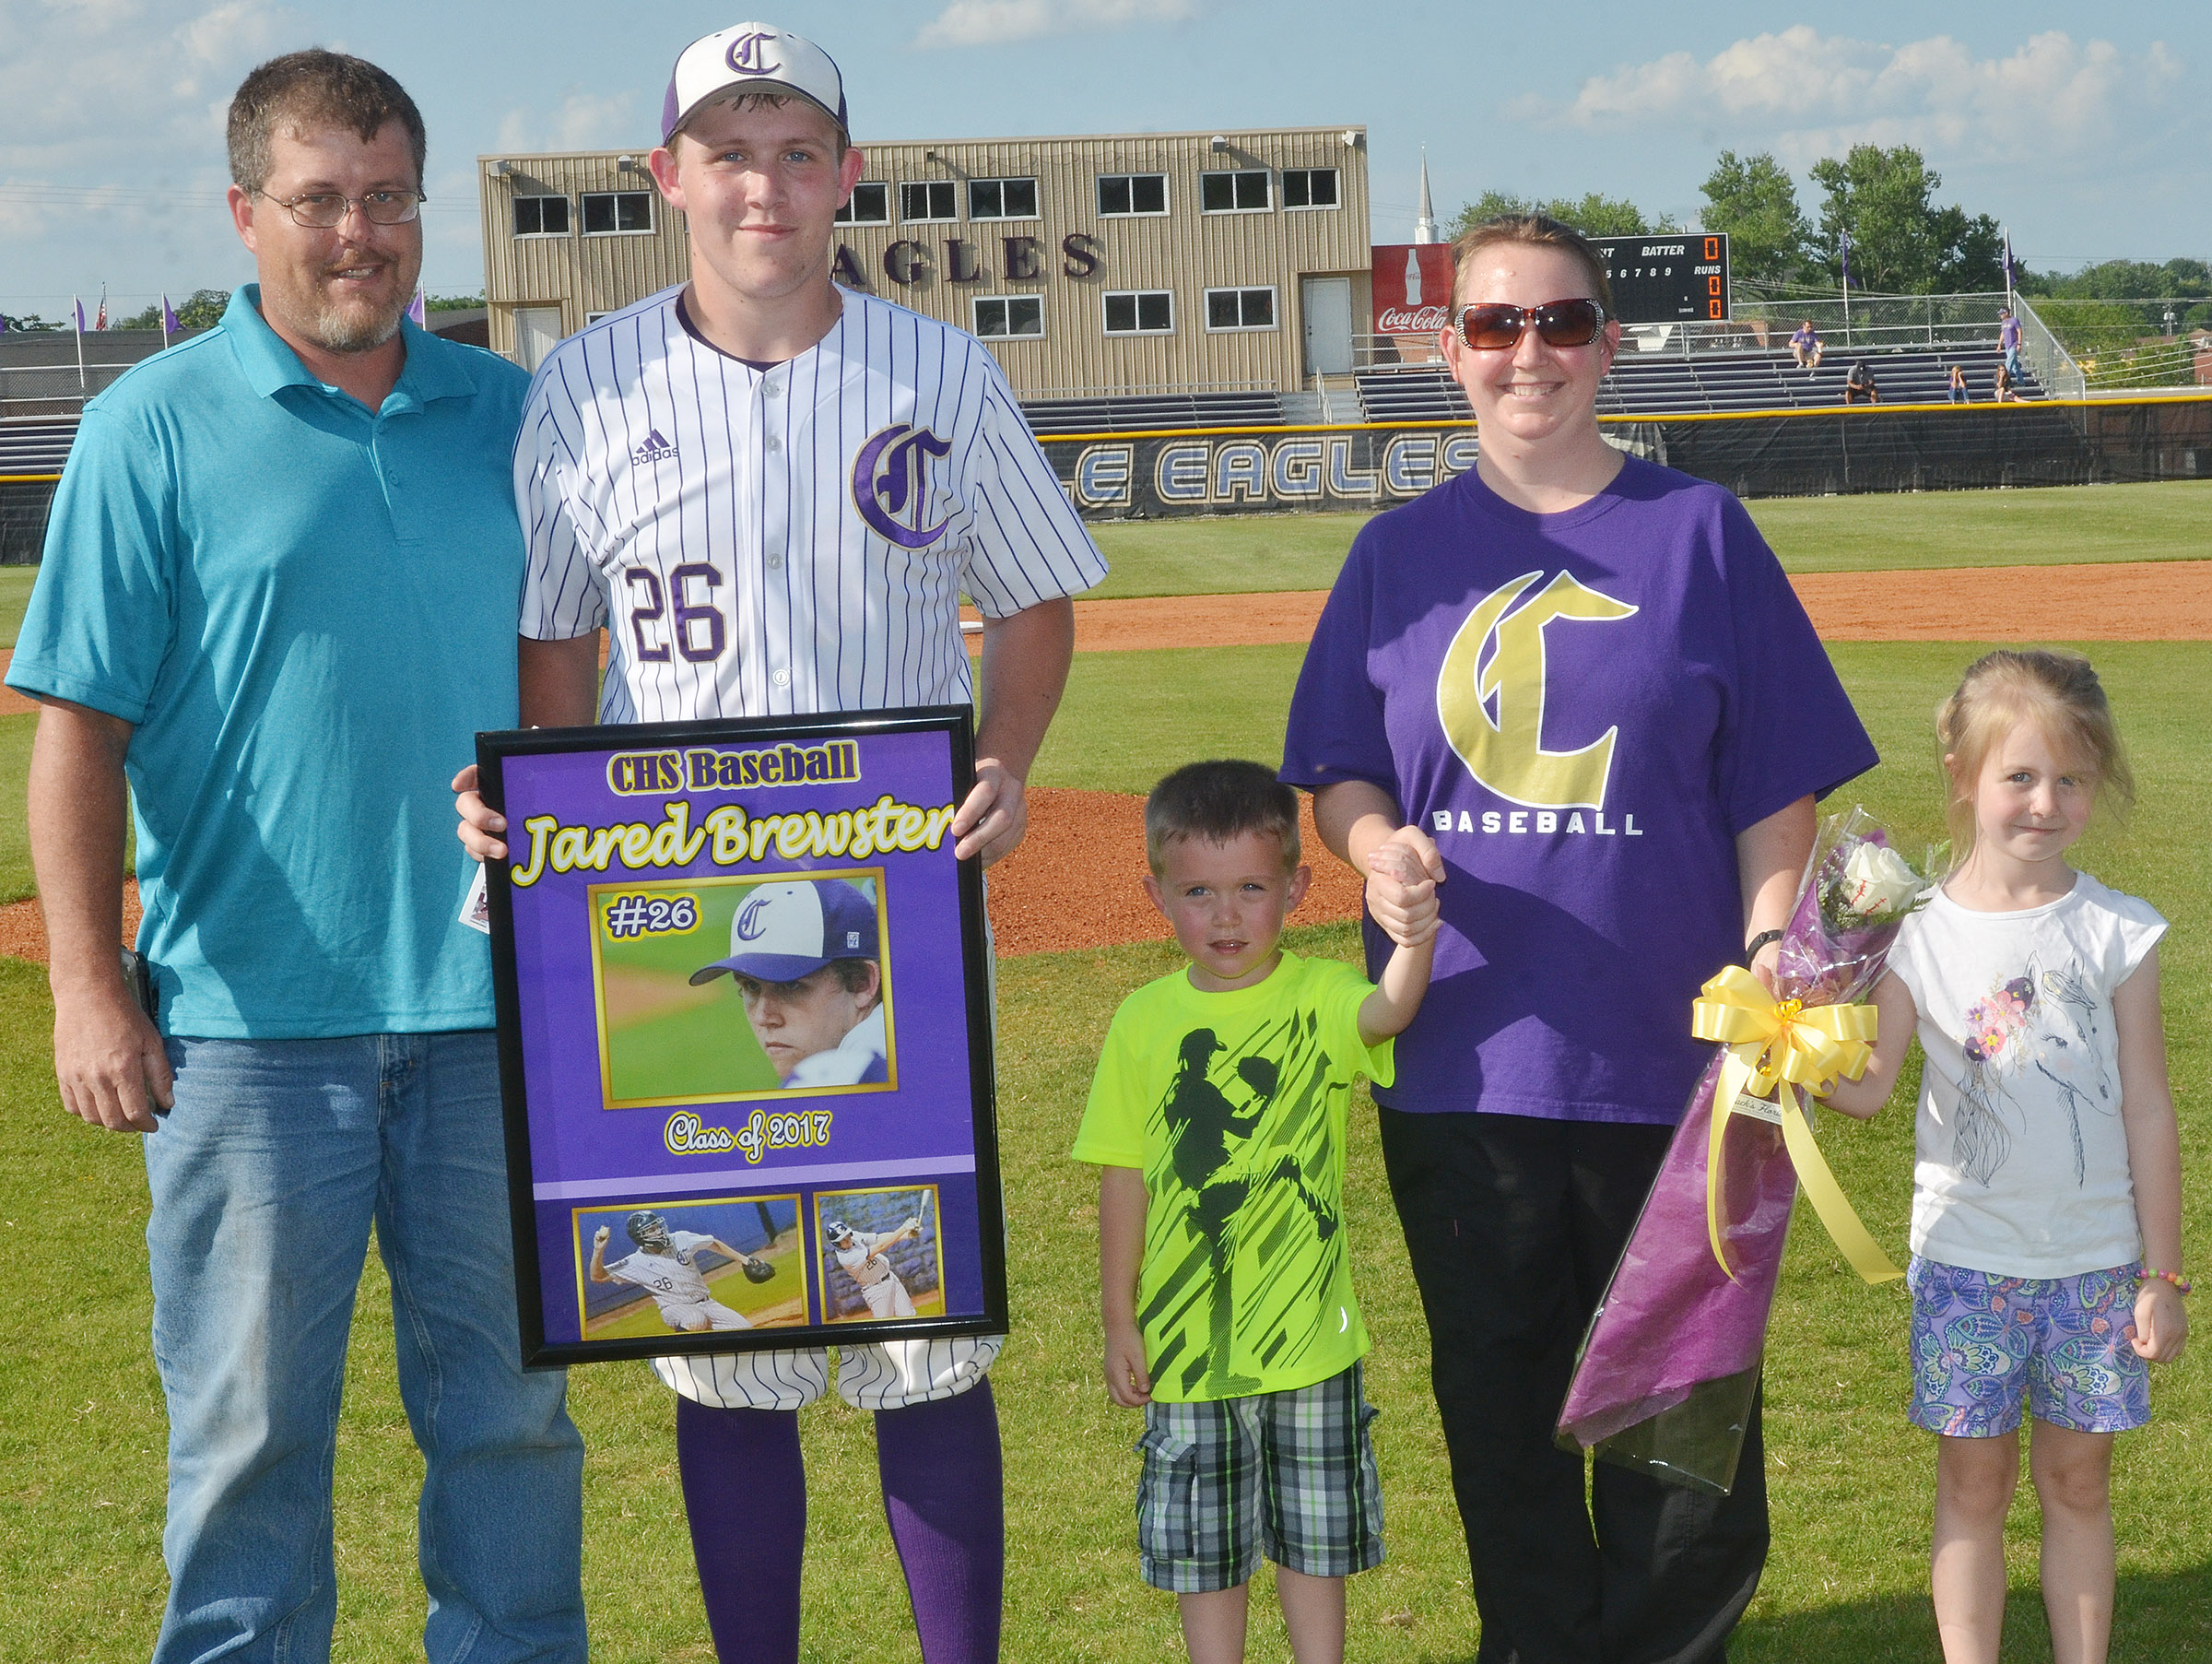 CHS senior Jared Brewster is honored for his dedication to the CHS baseball team. From left are his father, David Brewster, Brewster, his brother Jaden, his mother Suzanne Davis and his sister Jewell.